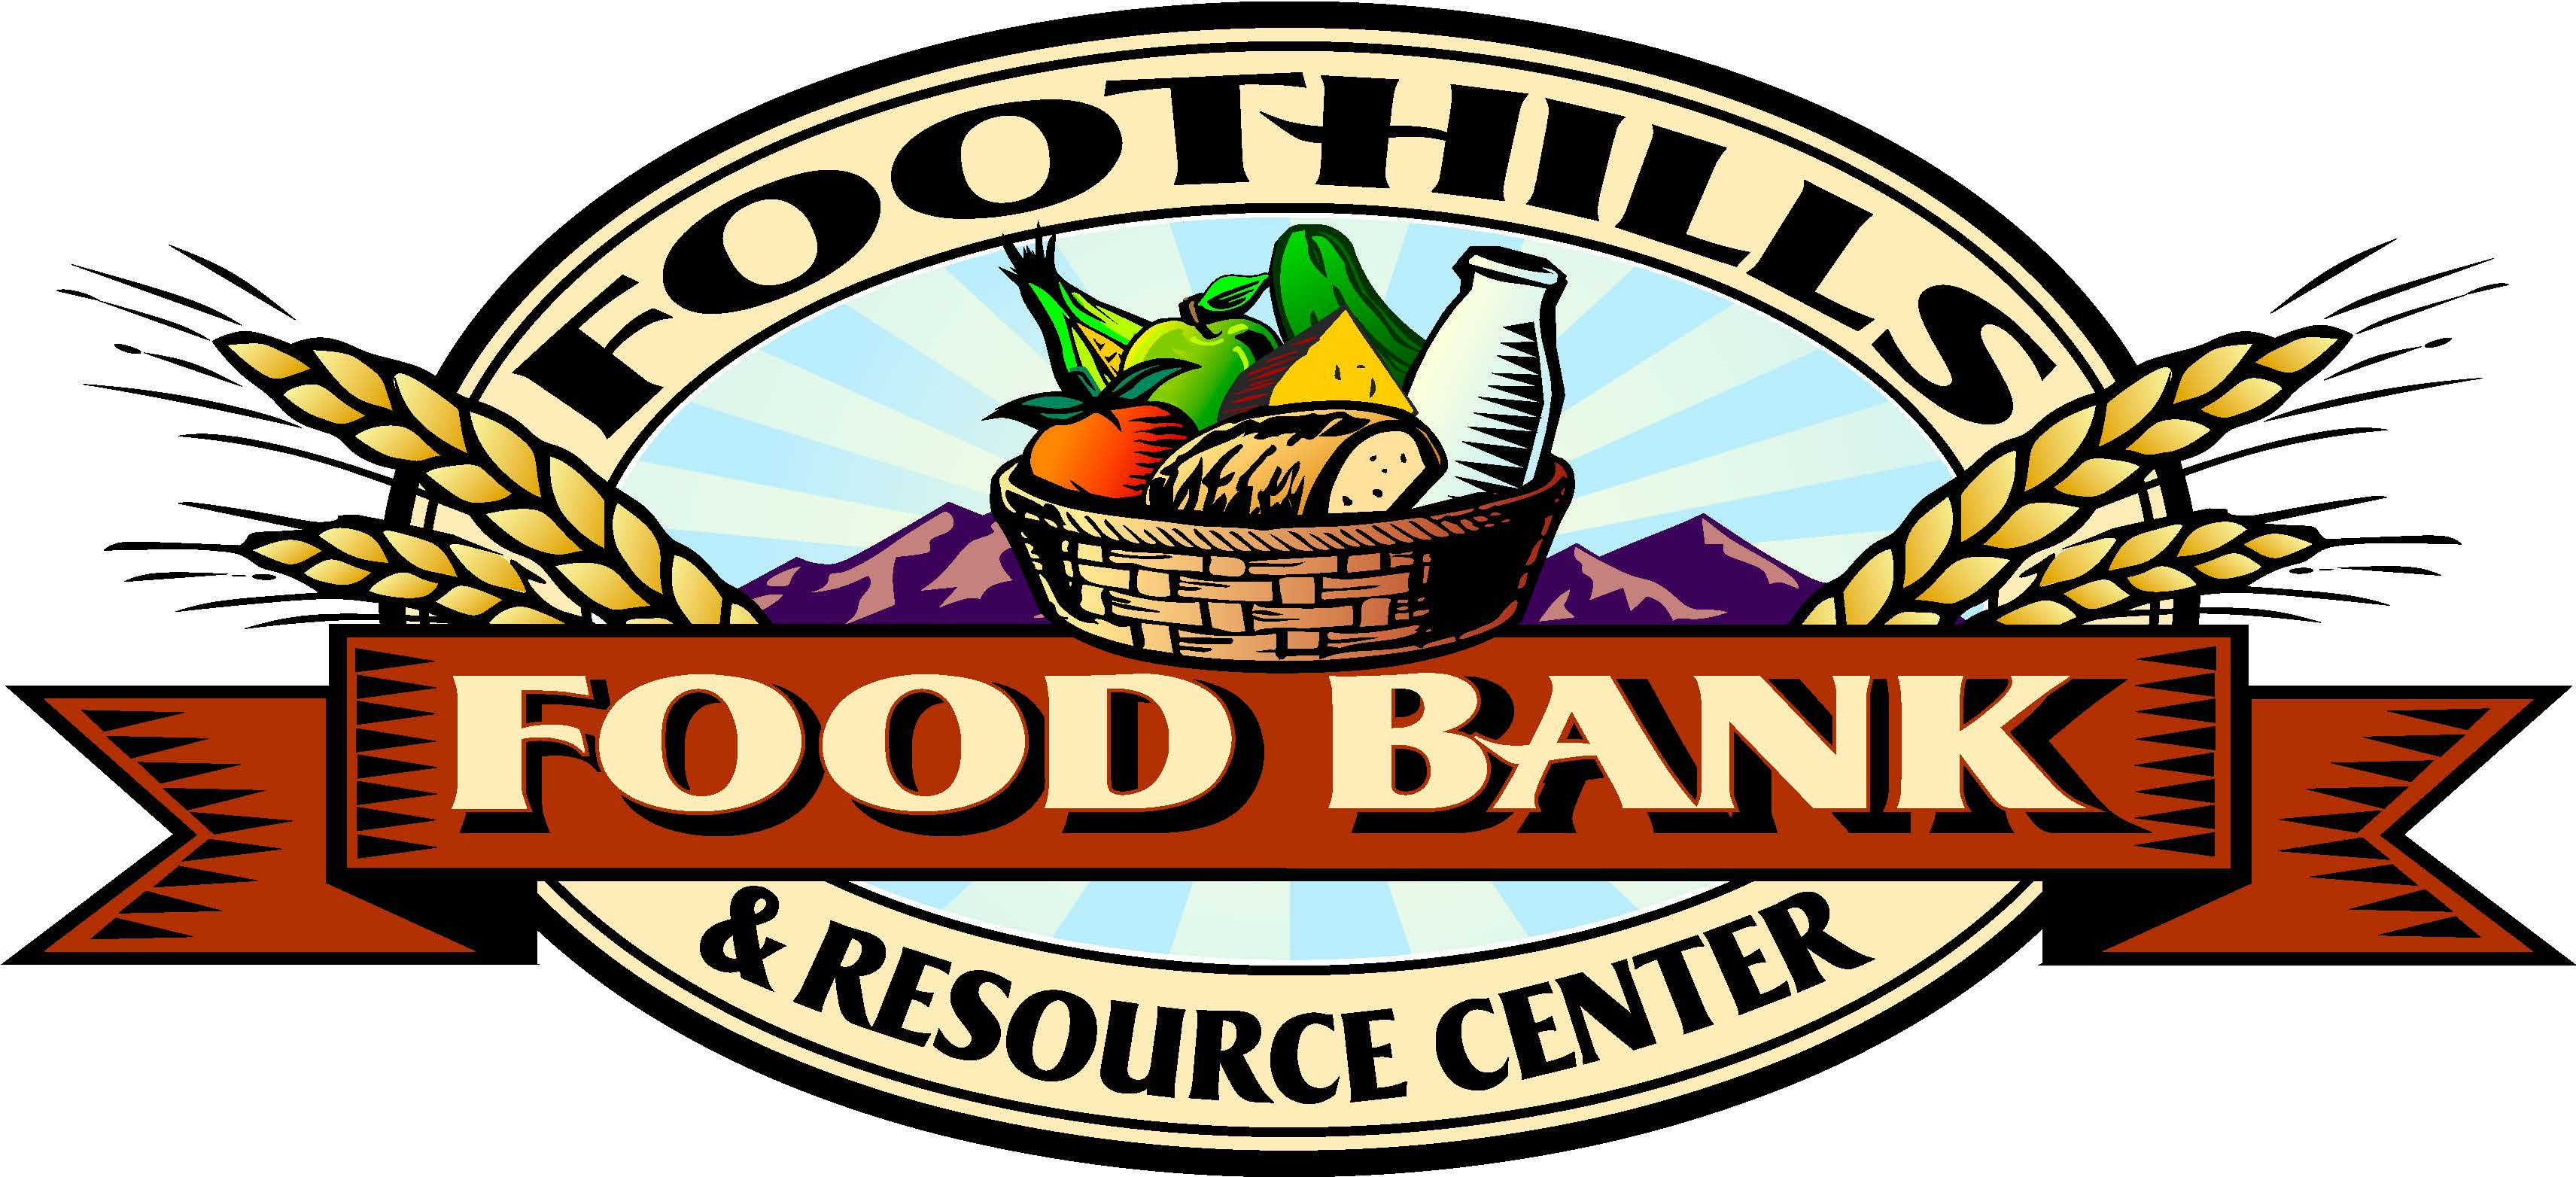 Foothills Foodbank